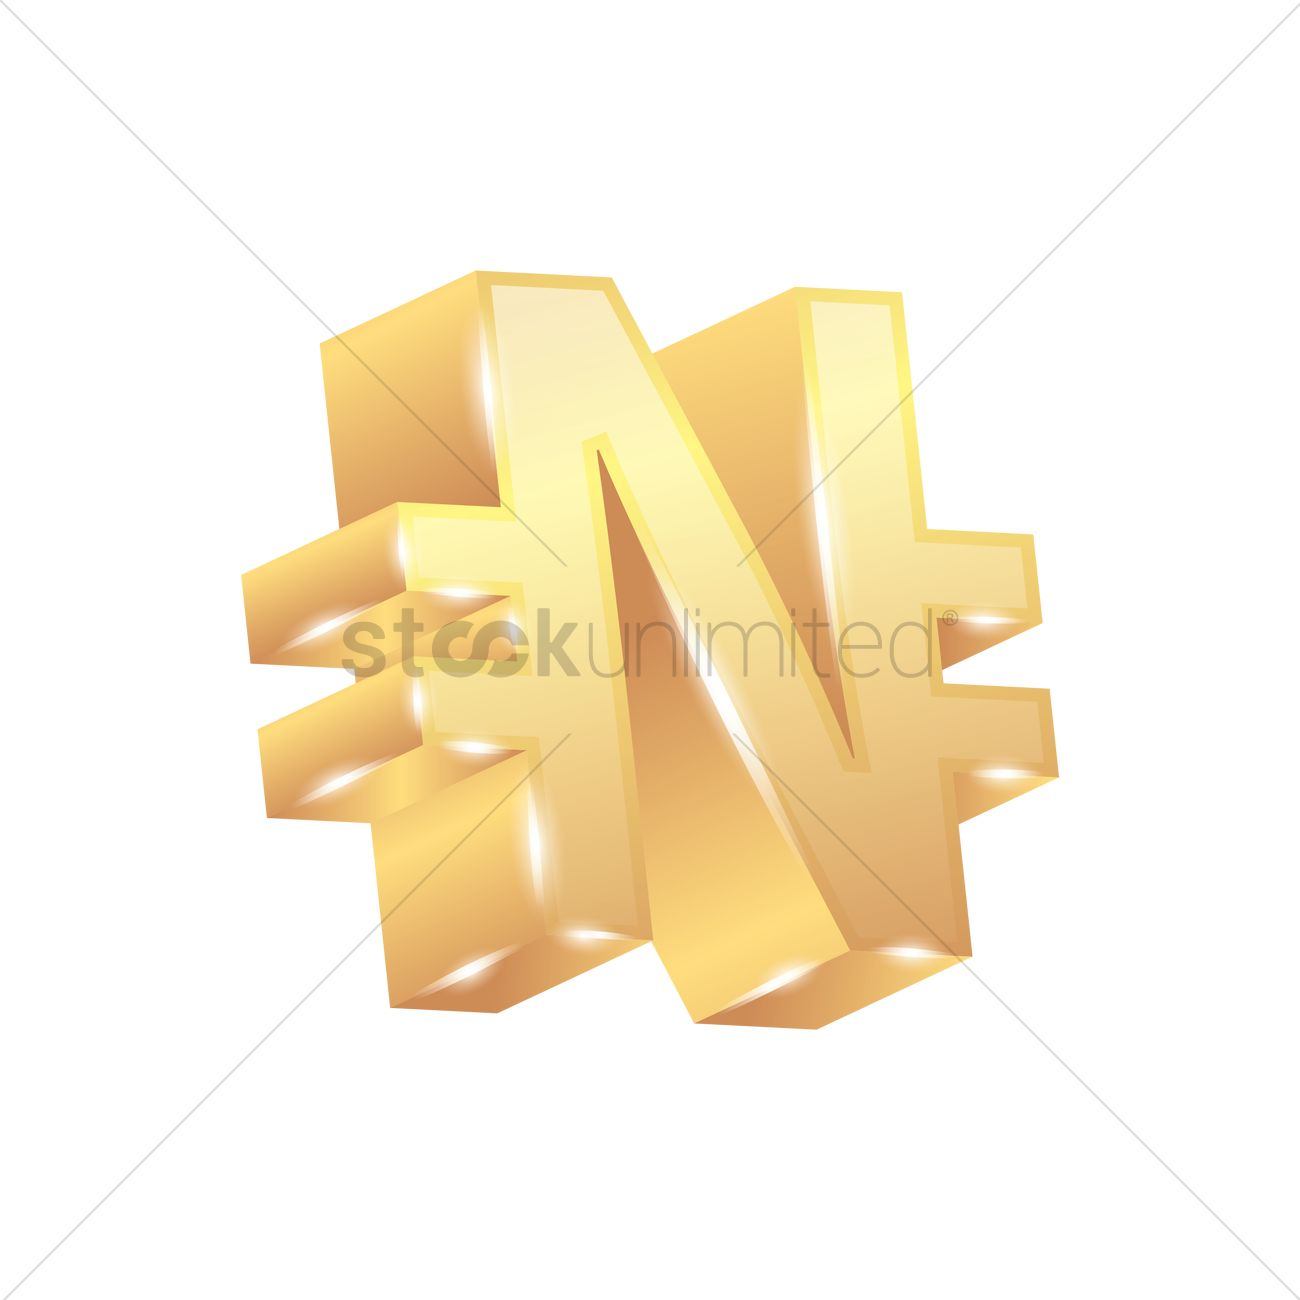 3d naira currency symbol vector image 1828090 stockunlimited 3d naira currency symbol vector graphic biocorpaavc